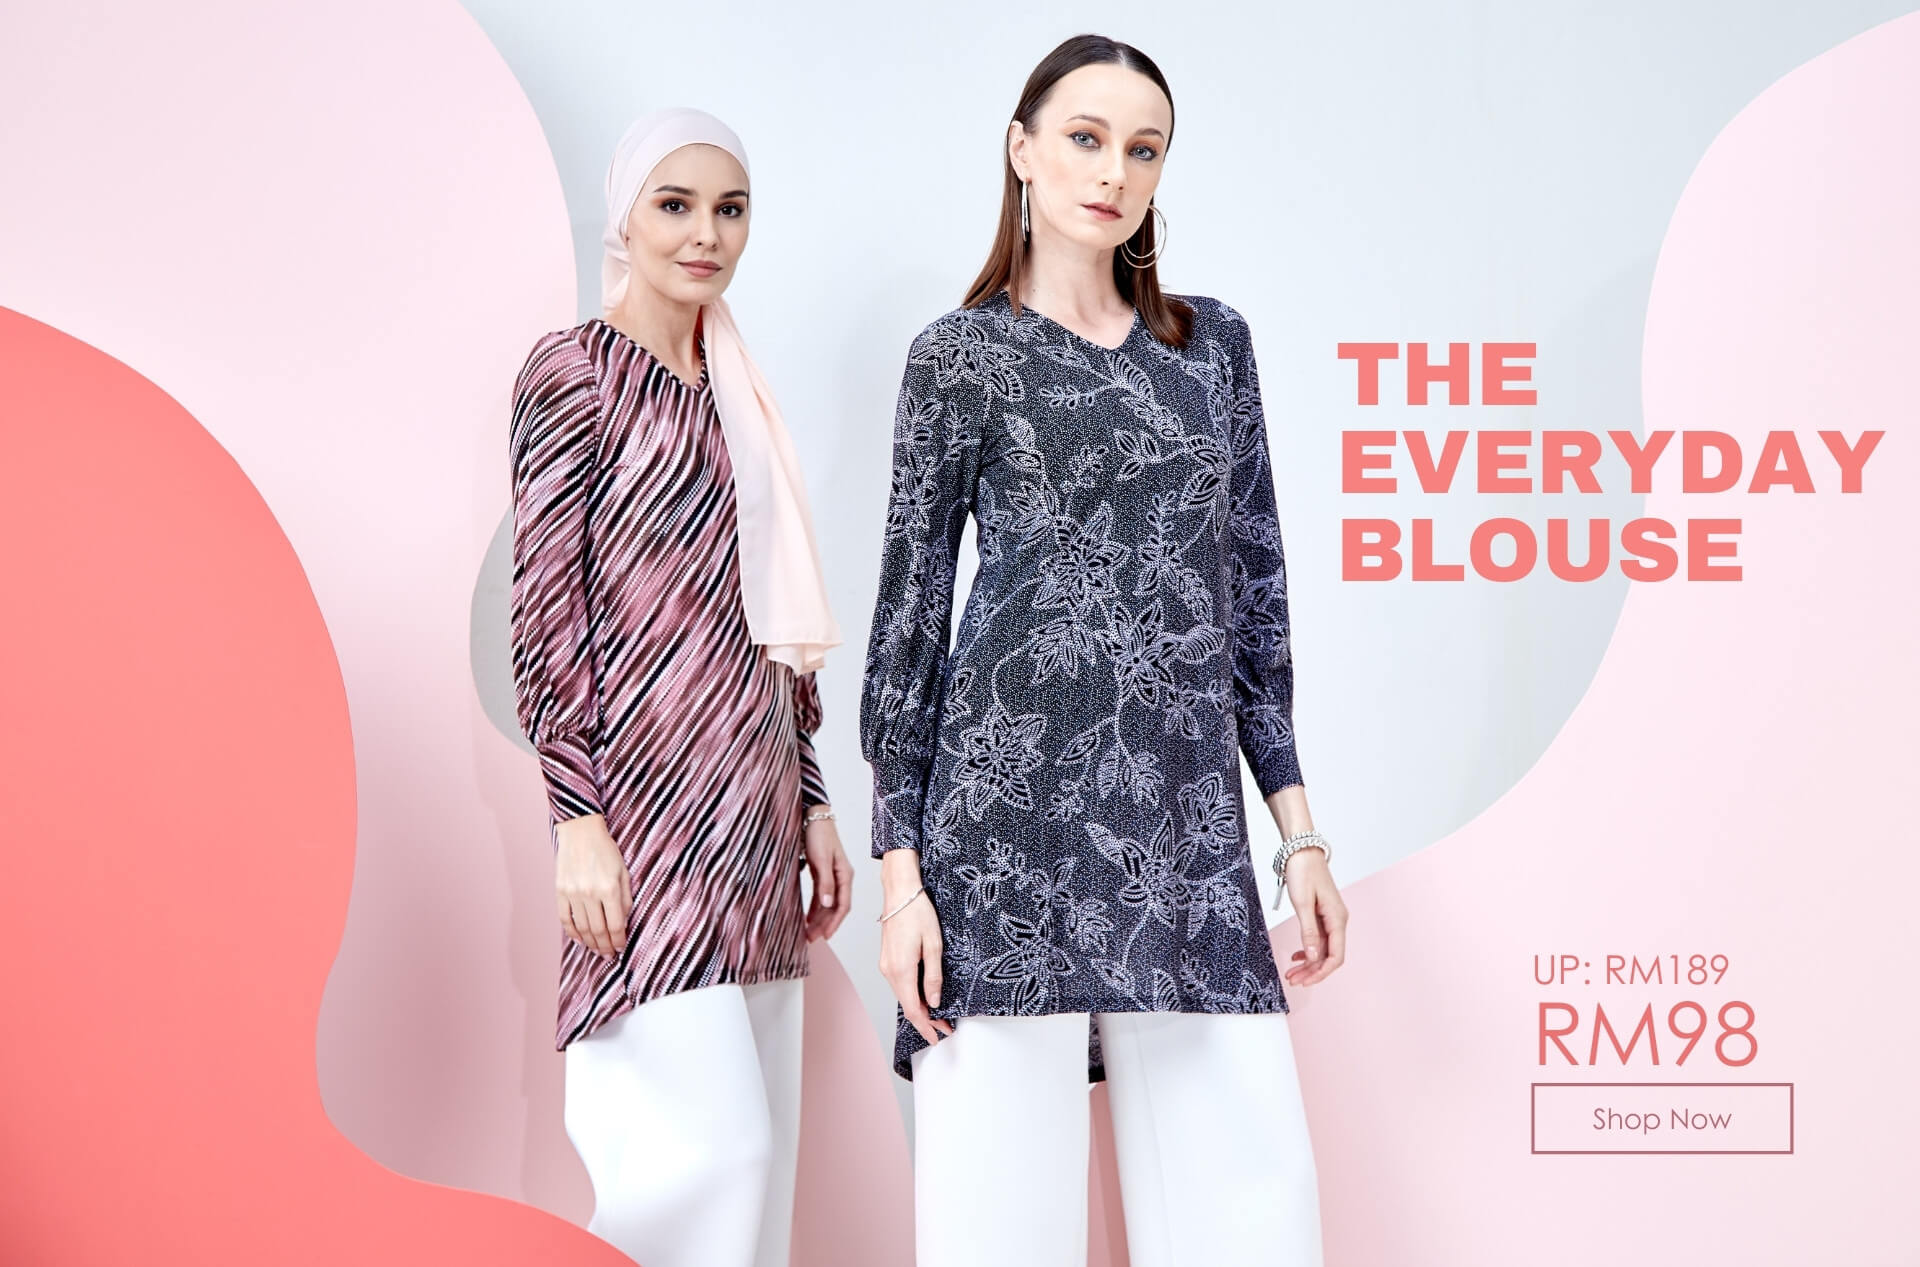 The Everyday Blouse banner Oct 2021